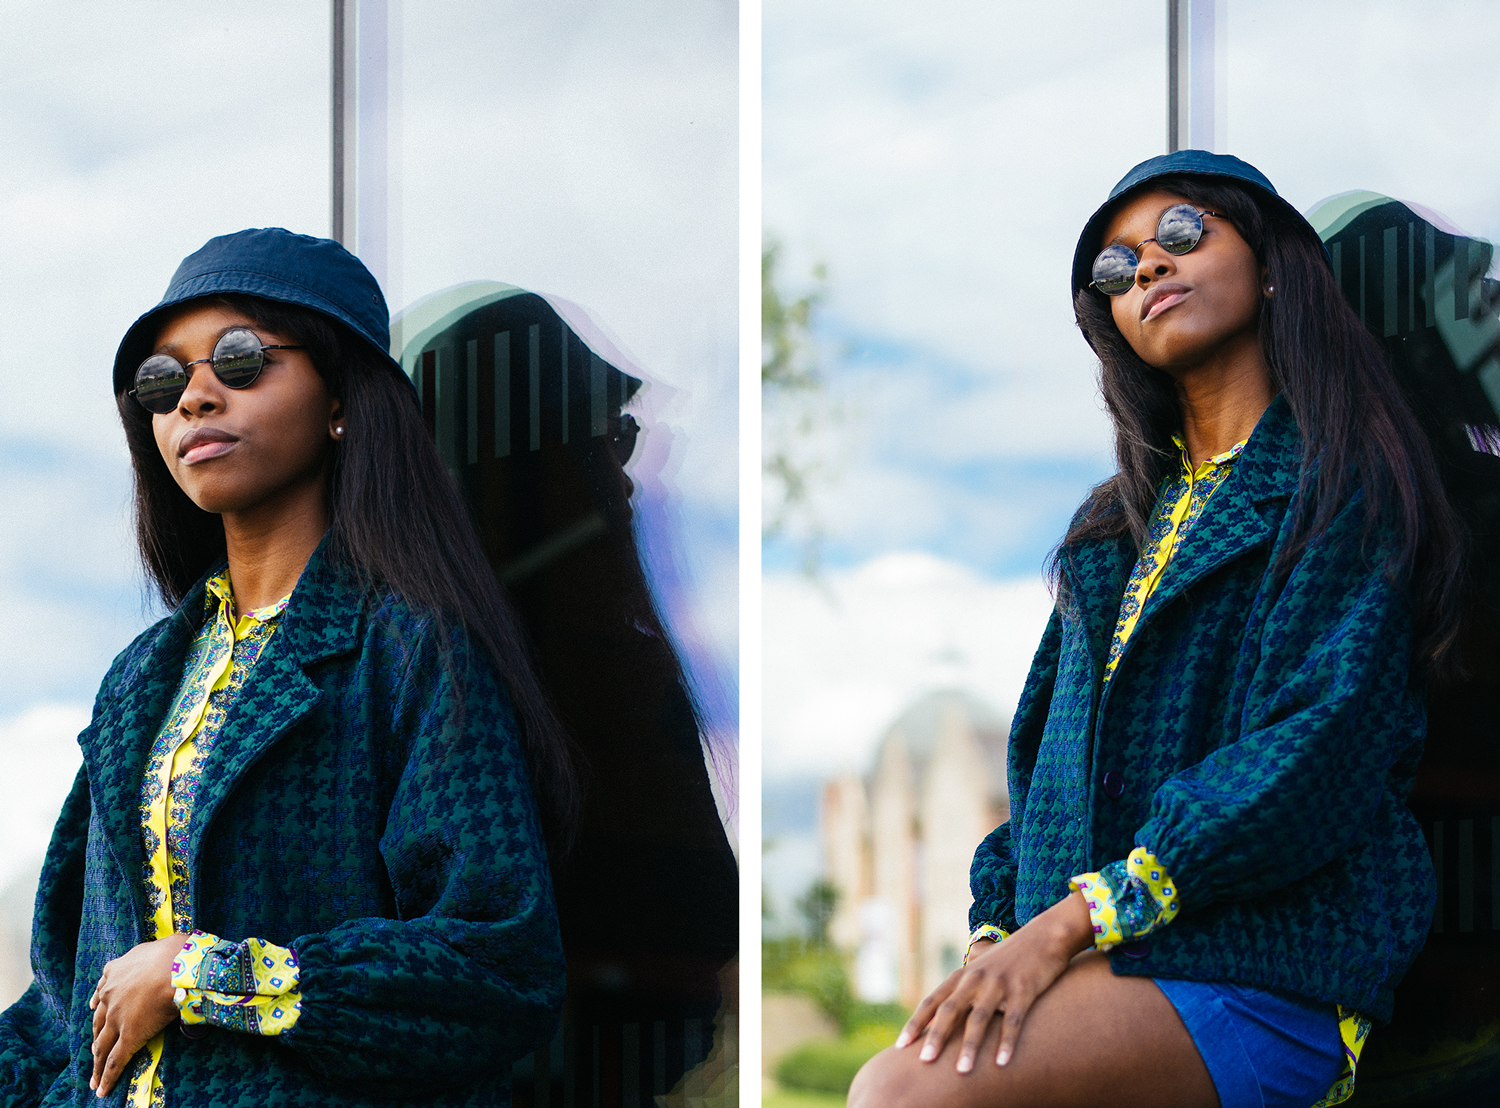 american apparel jacket, h&m bucket hat, dogtooth print, houndstooth print